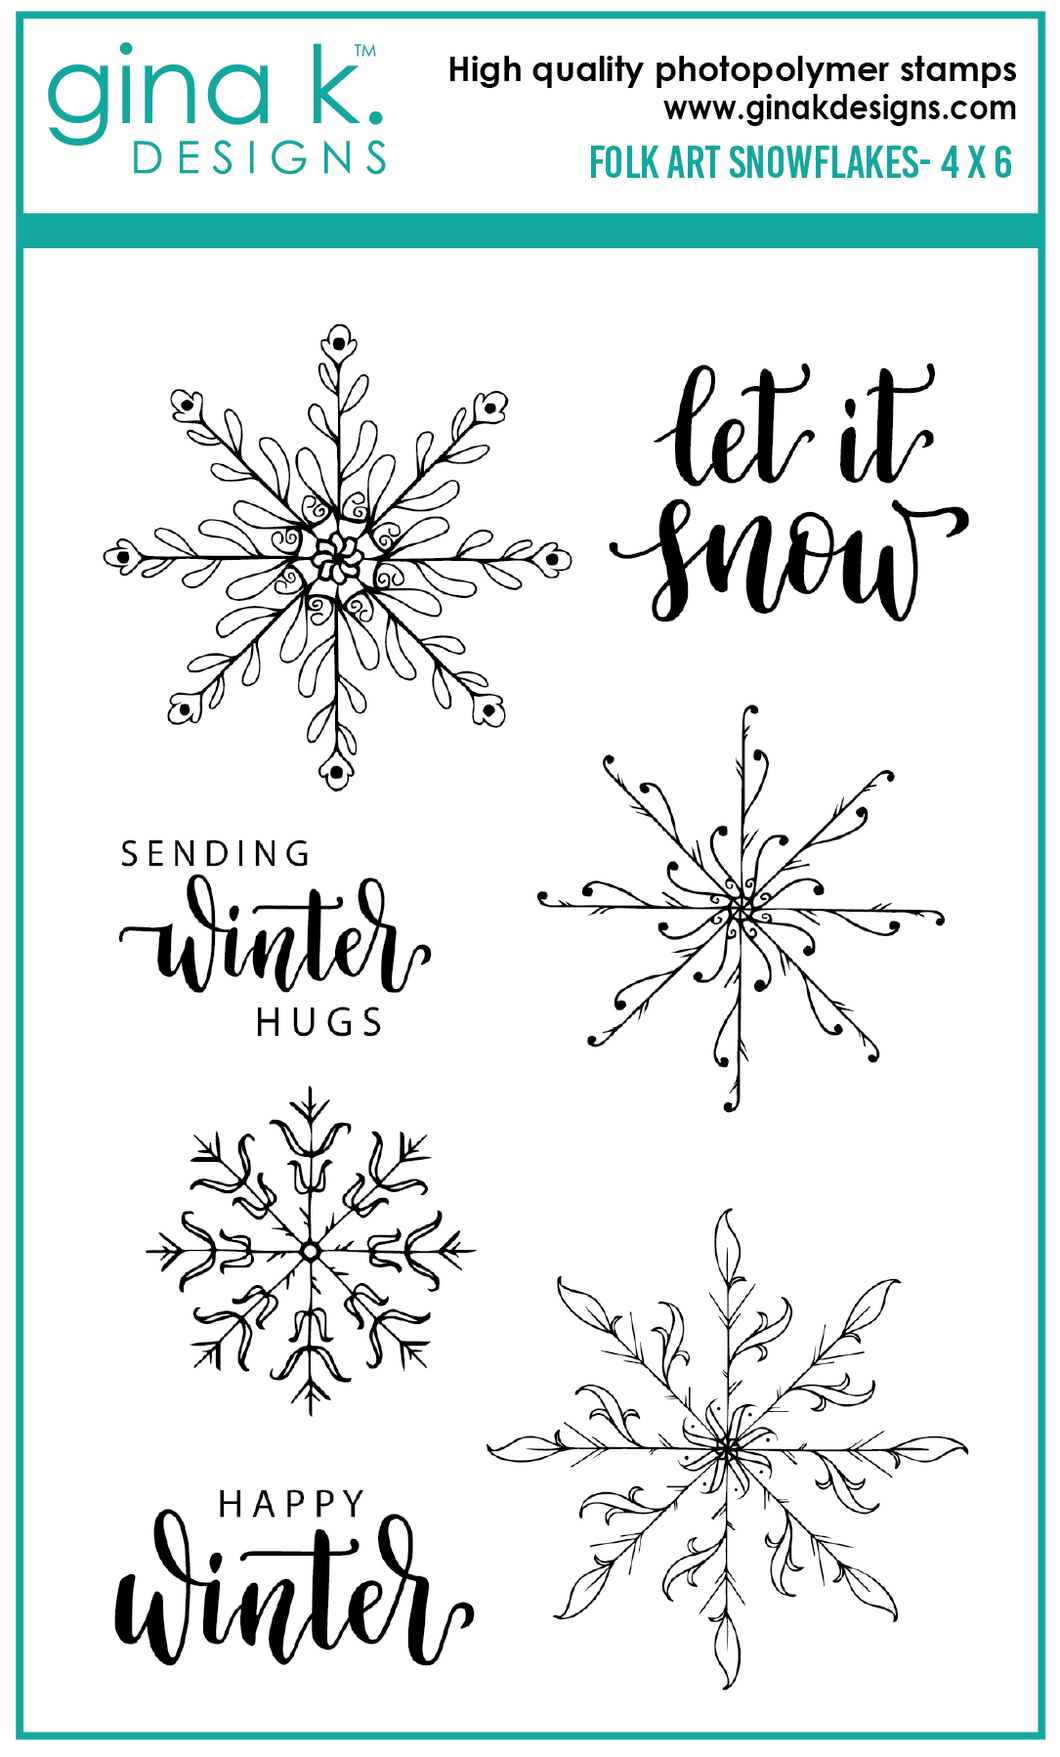 DIRECT BUY GINA K DESIGNS MEDIUM STAMP SET FOLK ART SNOWFLAKES (HAS TO BE ORDERED)